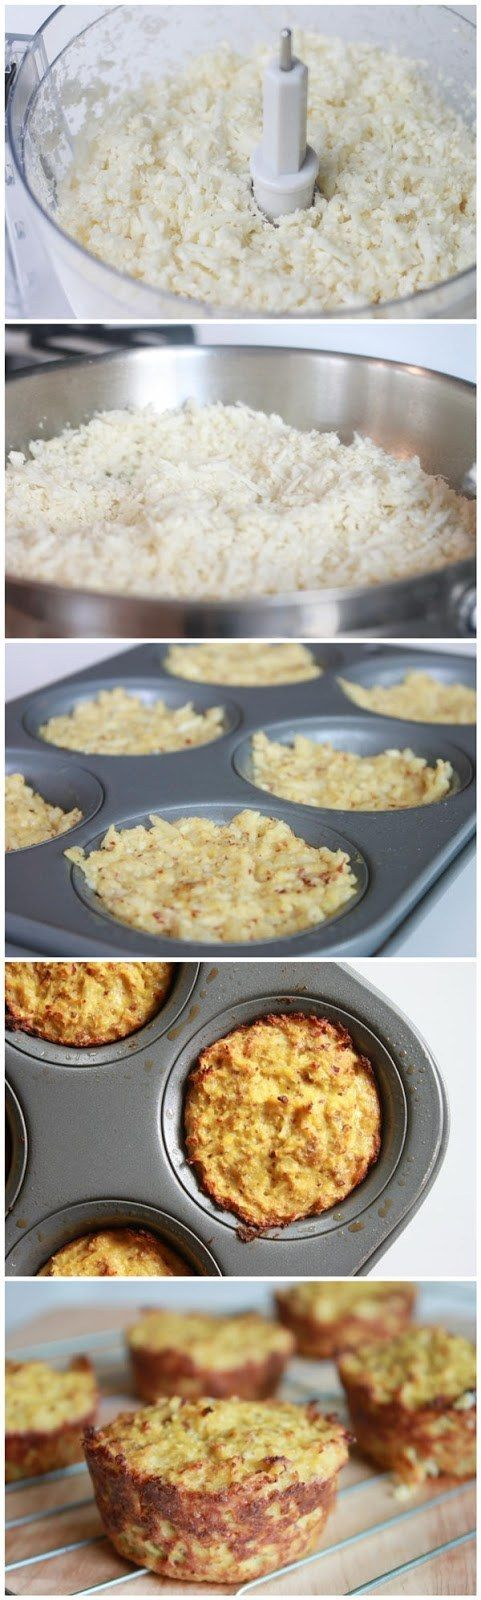 """Paleo Cauliflower """"Biscuits"""" 